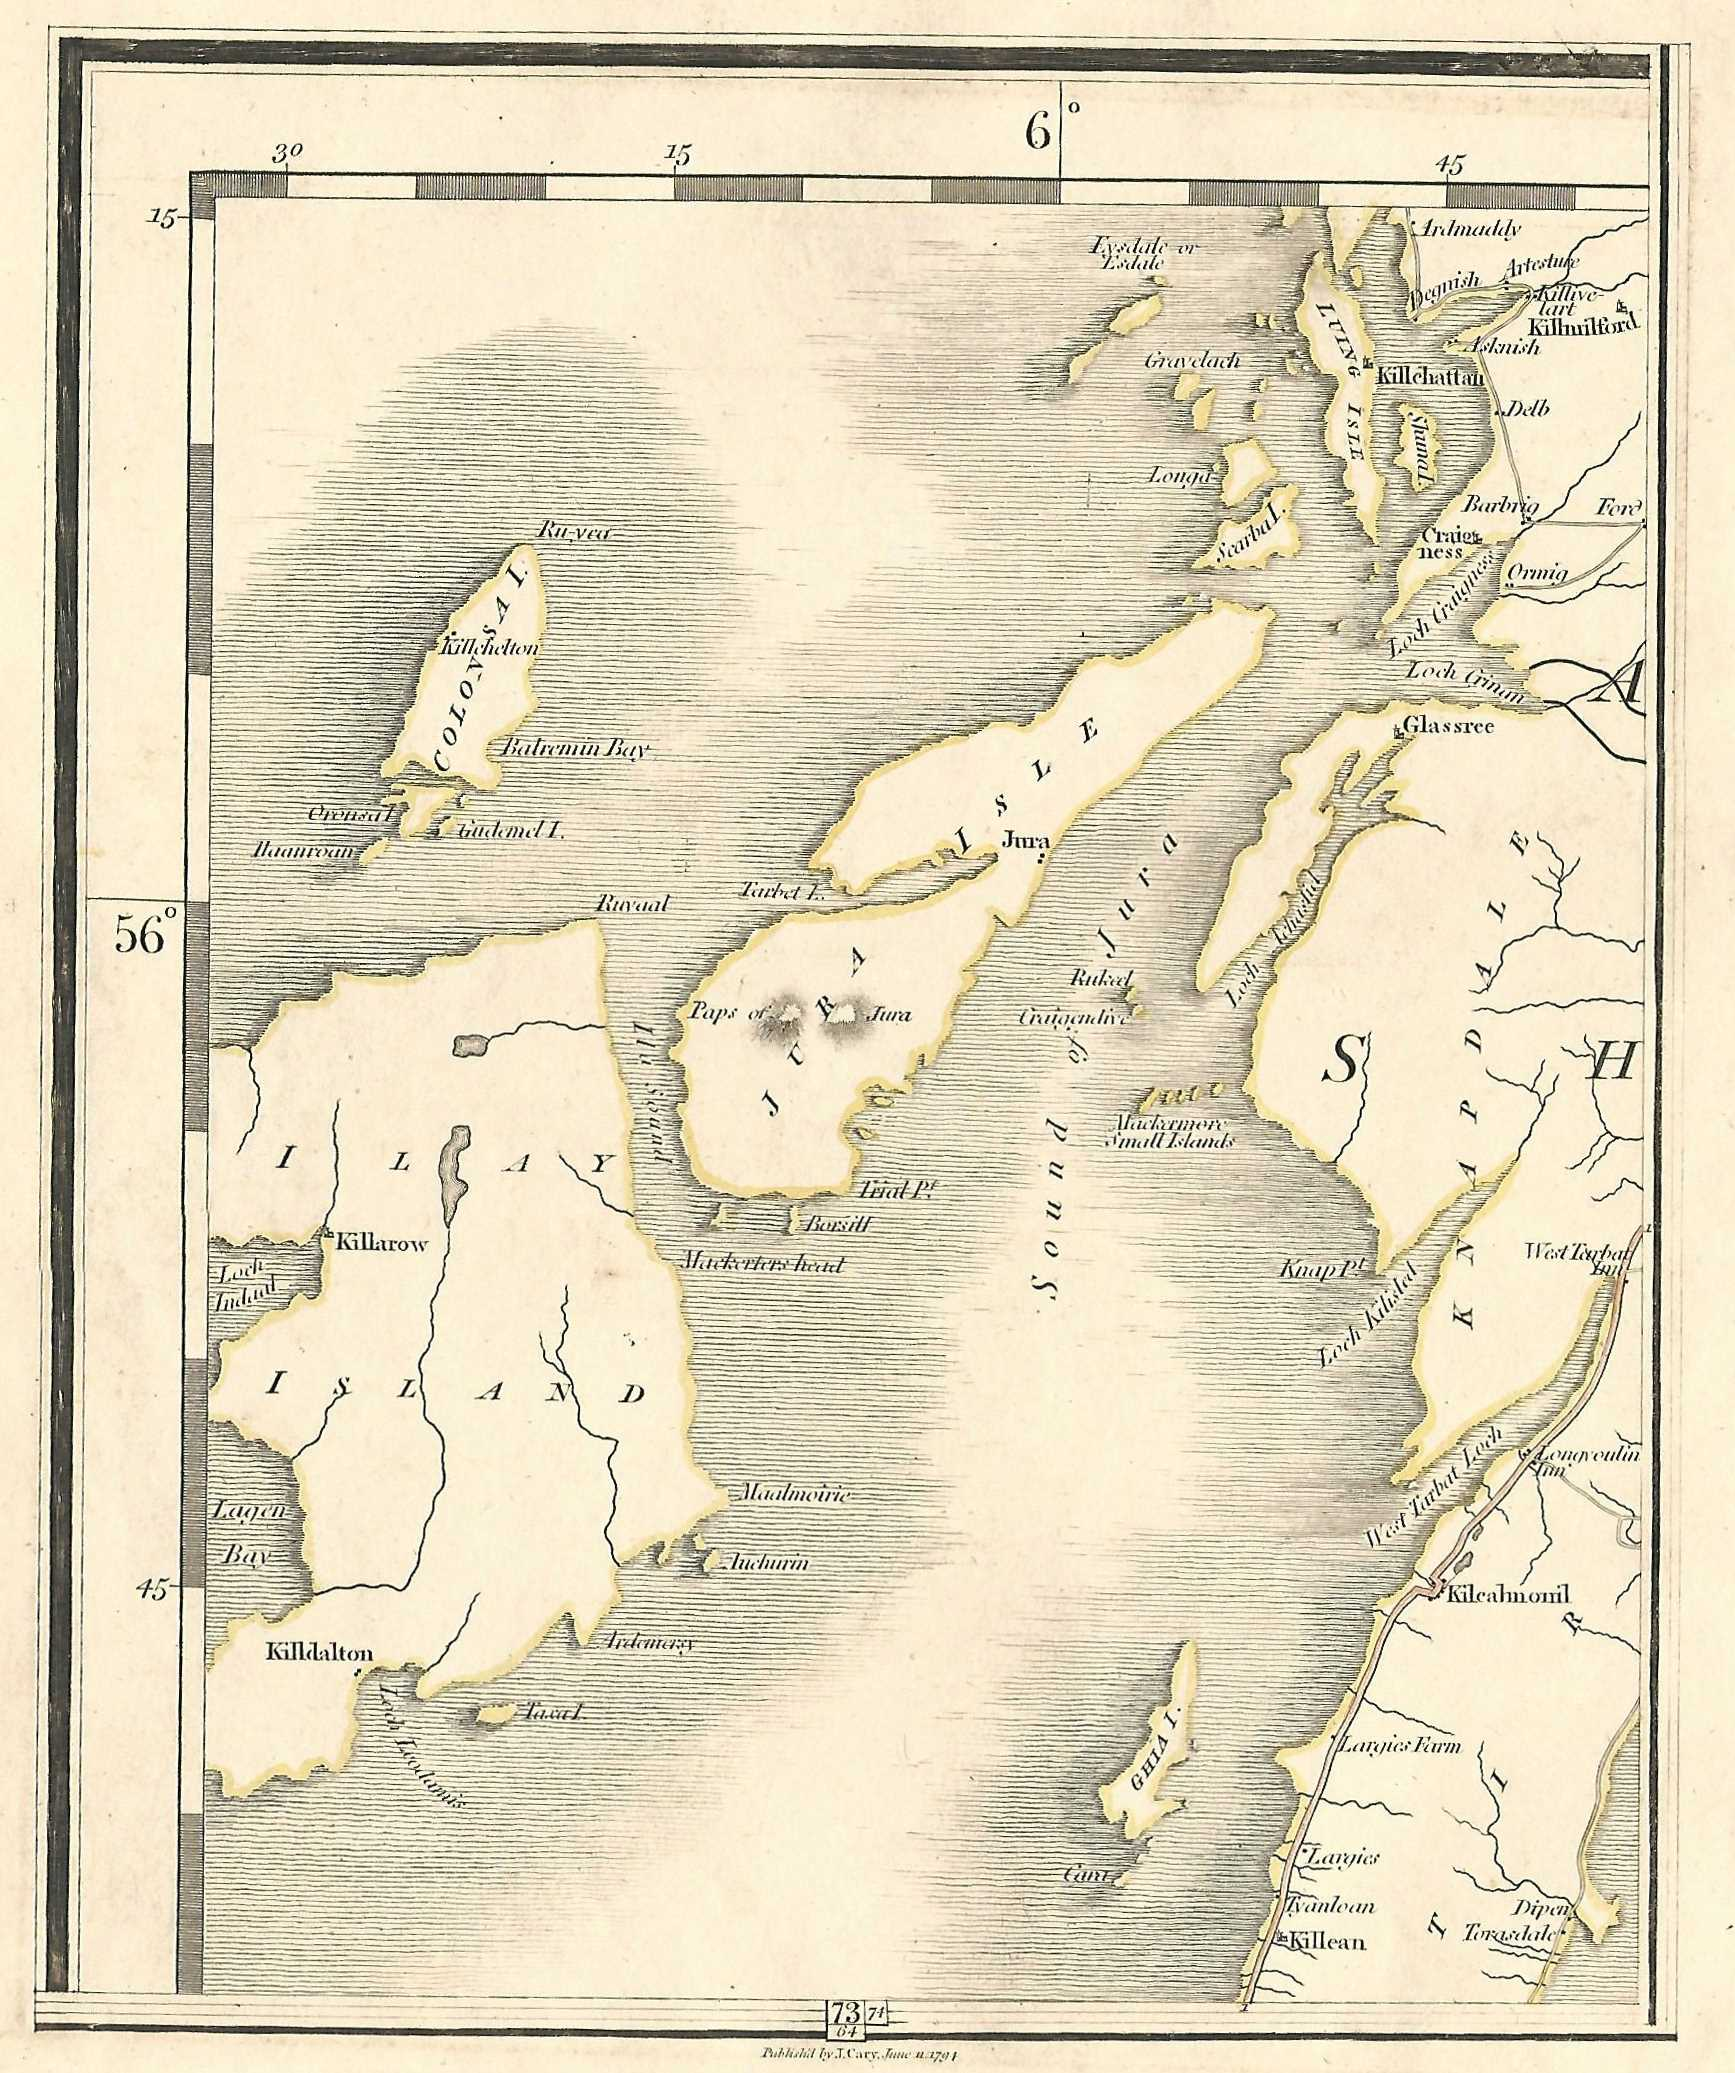 Mexico Map 1794.Jura Islay Colonsay Inner Hebrides Scotland Antique Map Published By